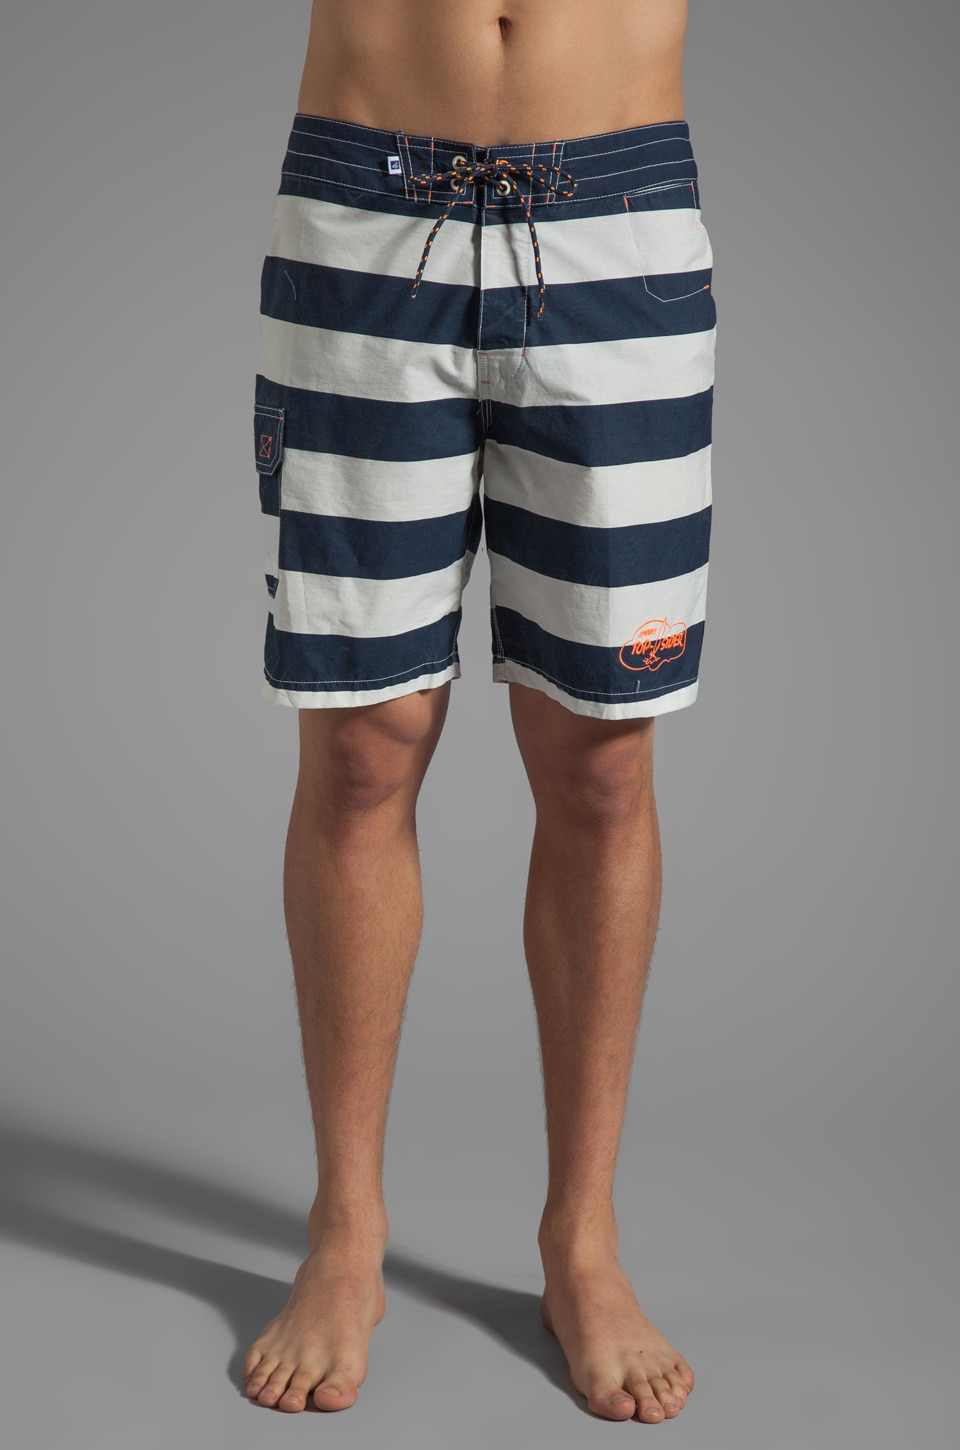 Sperry Top-Sider On Cloud 9 Boardshort in Navy